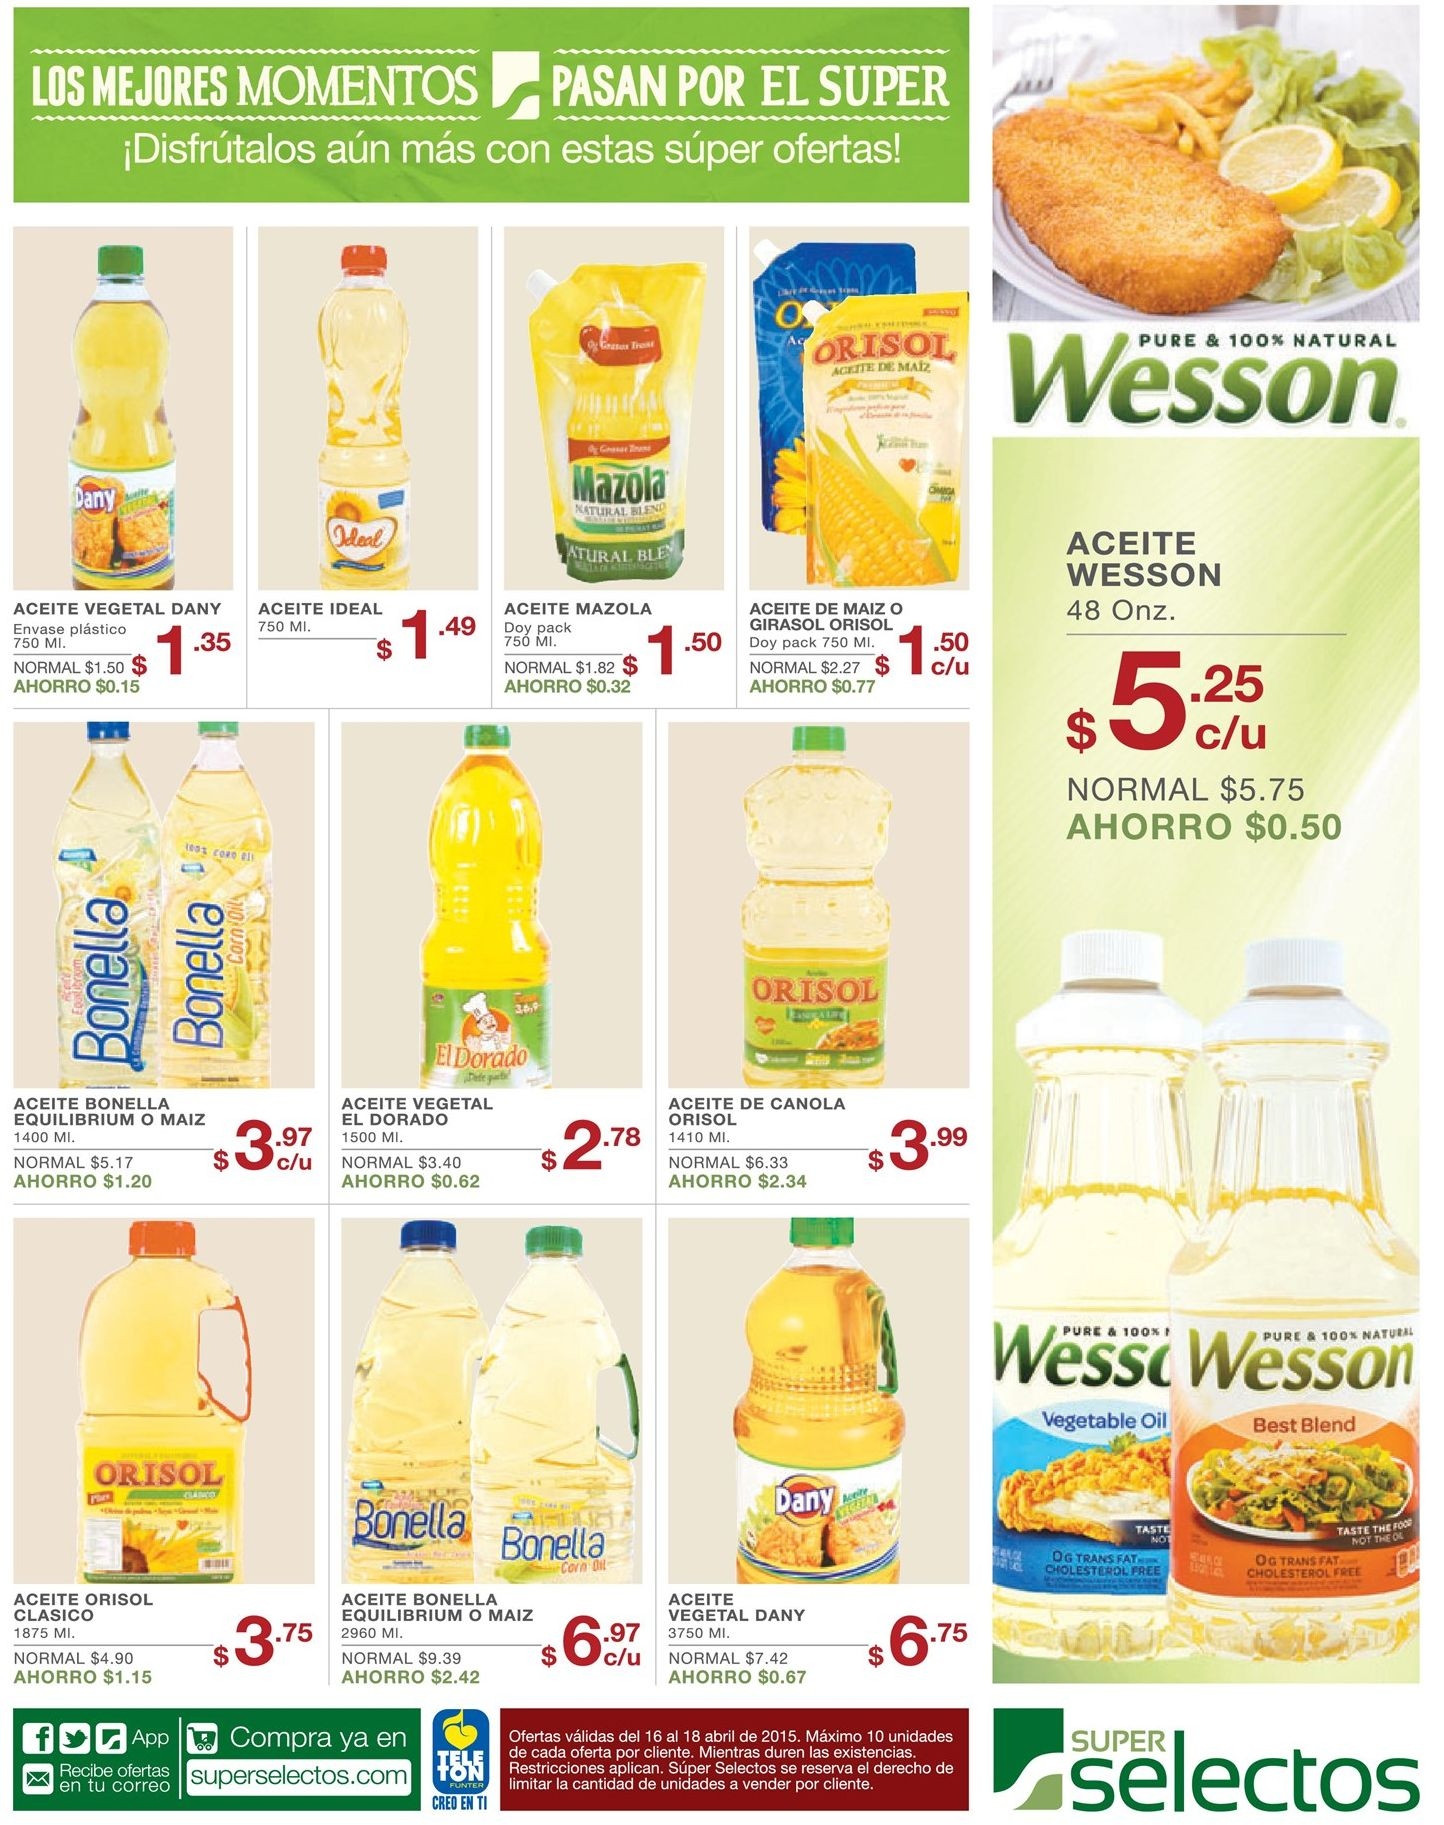 Oferta ACEITE Wesson pure and natural oil